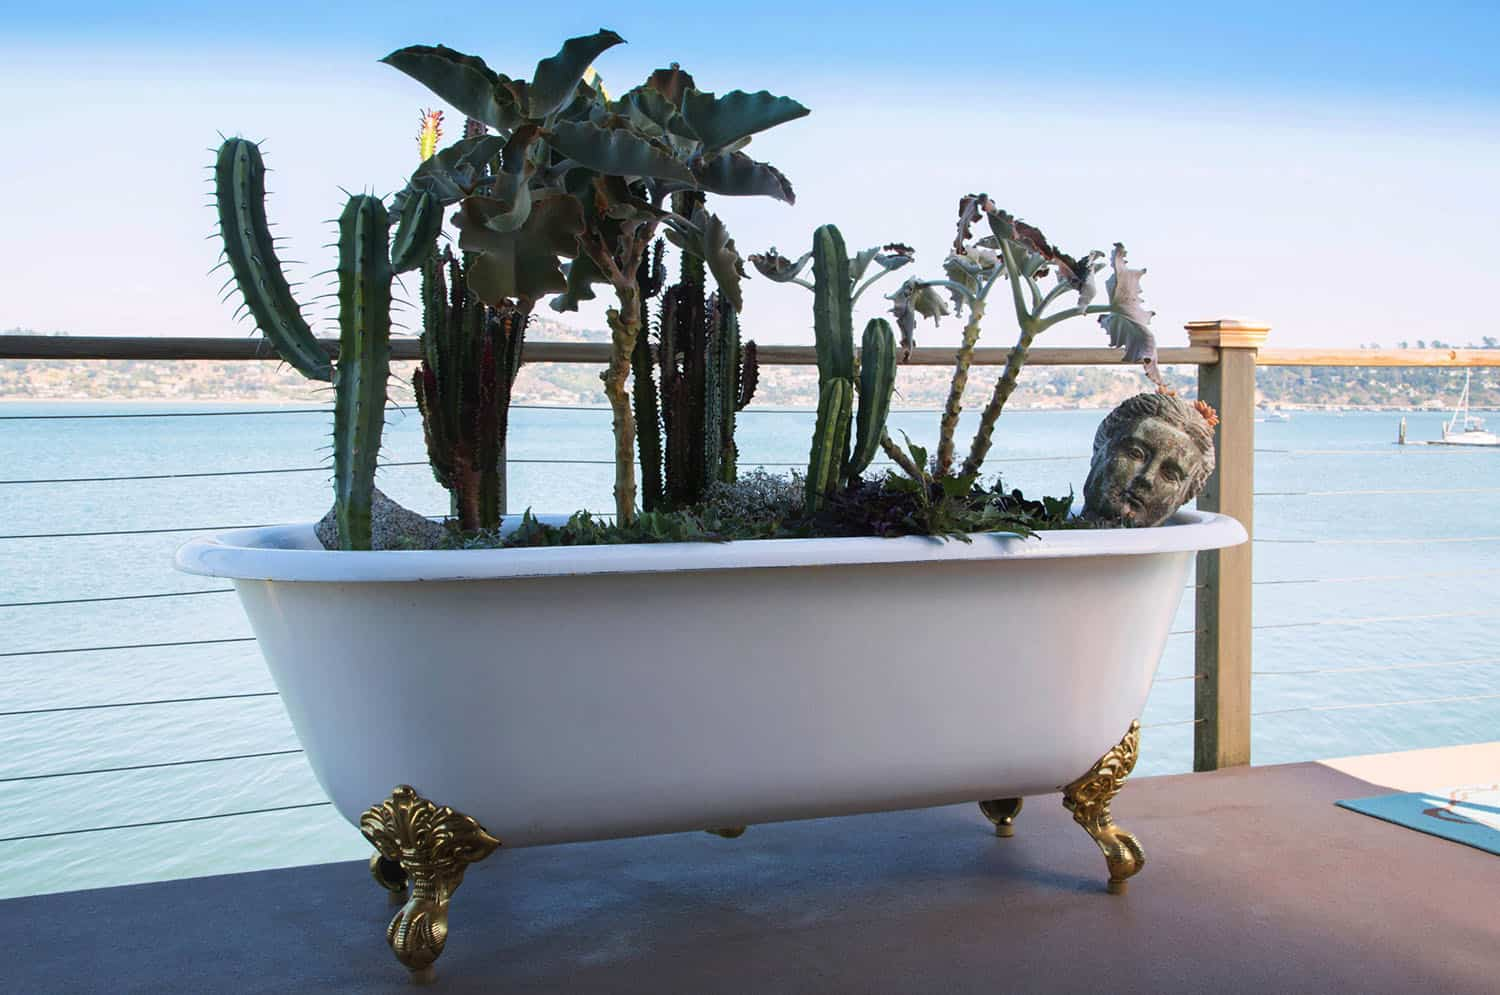 houseboat-eclectic-deck-vintage-tub-plants